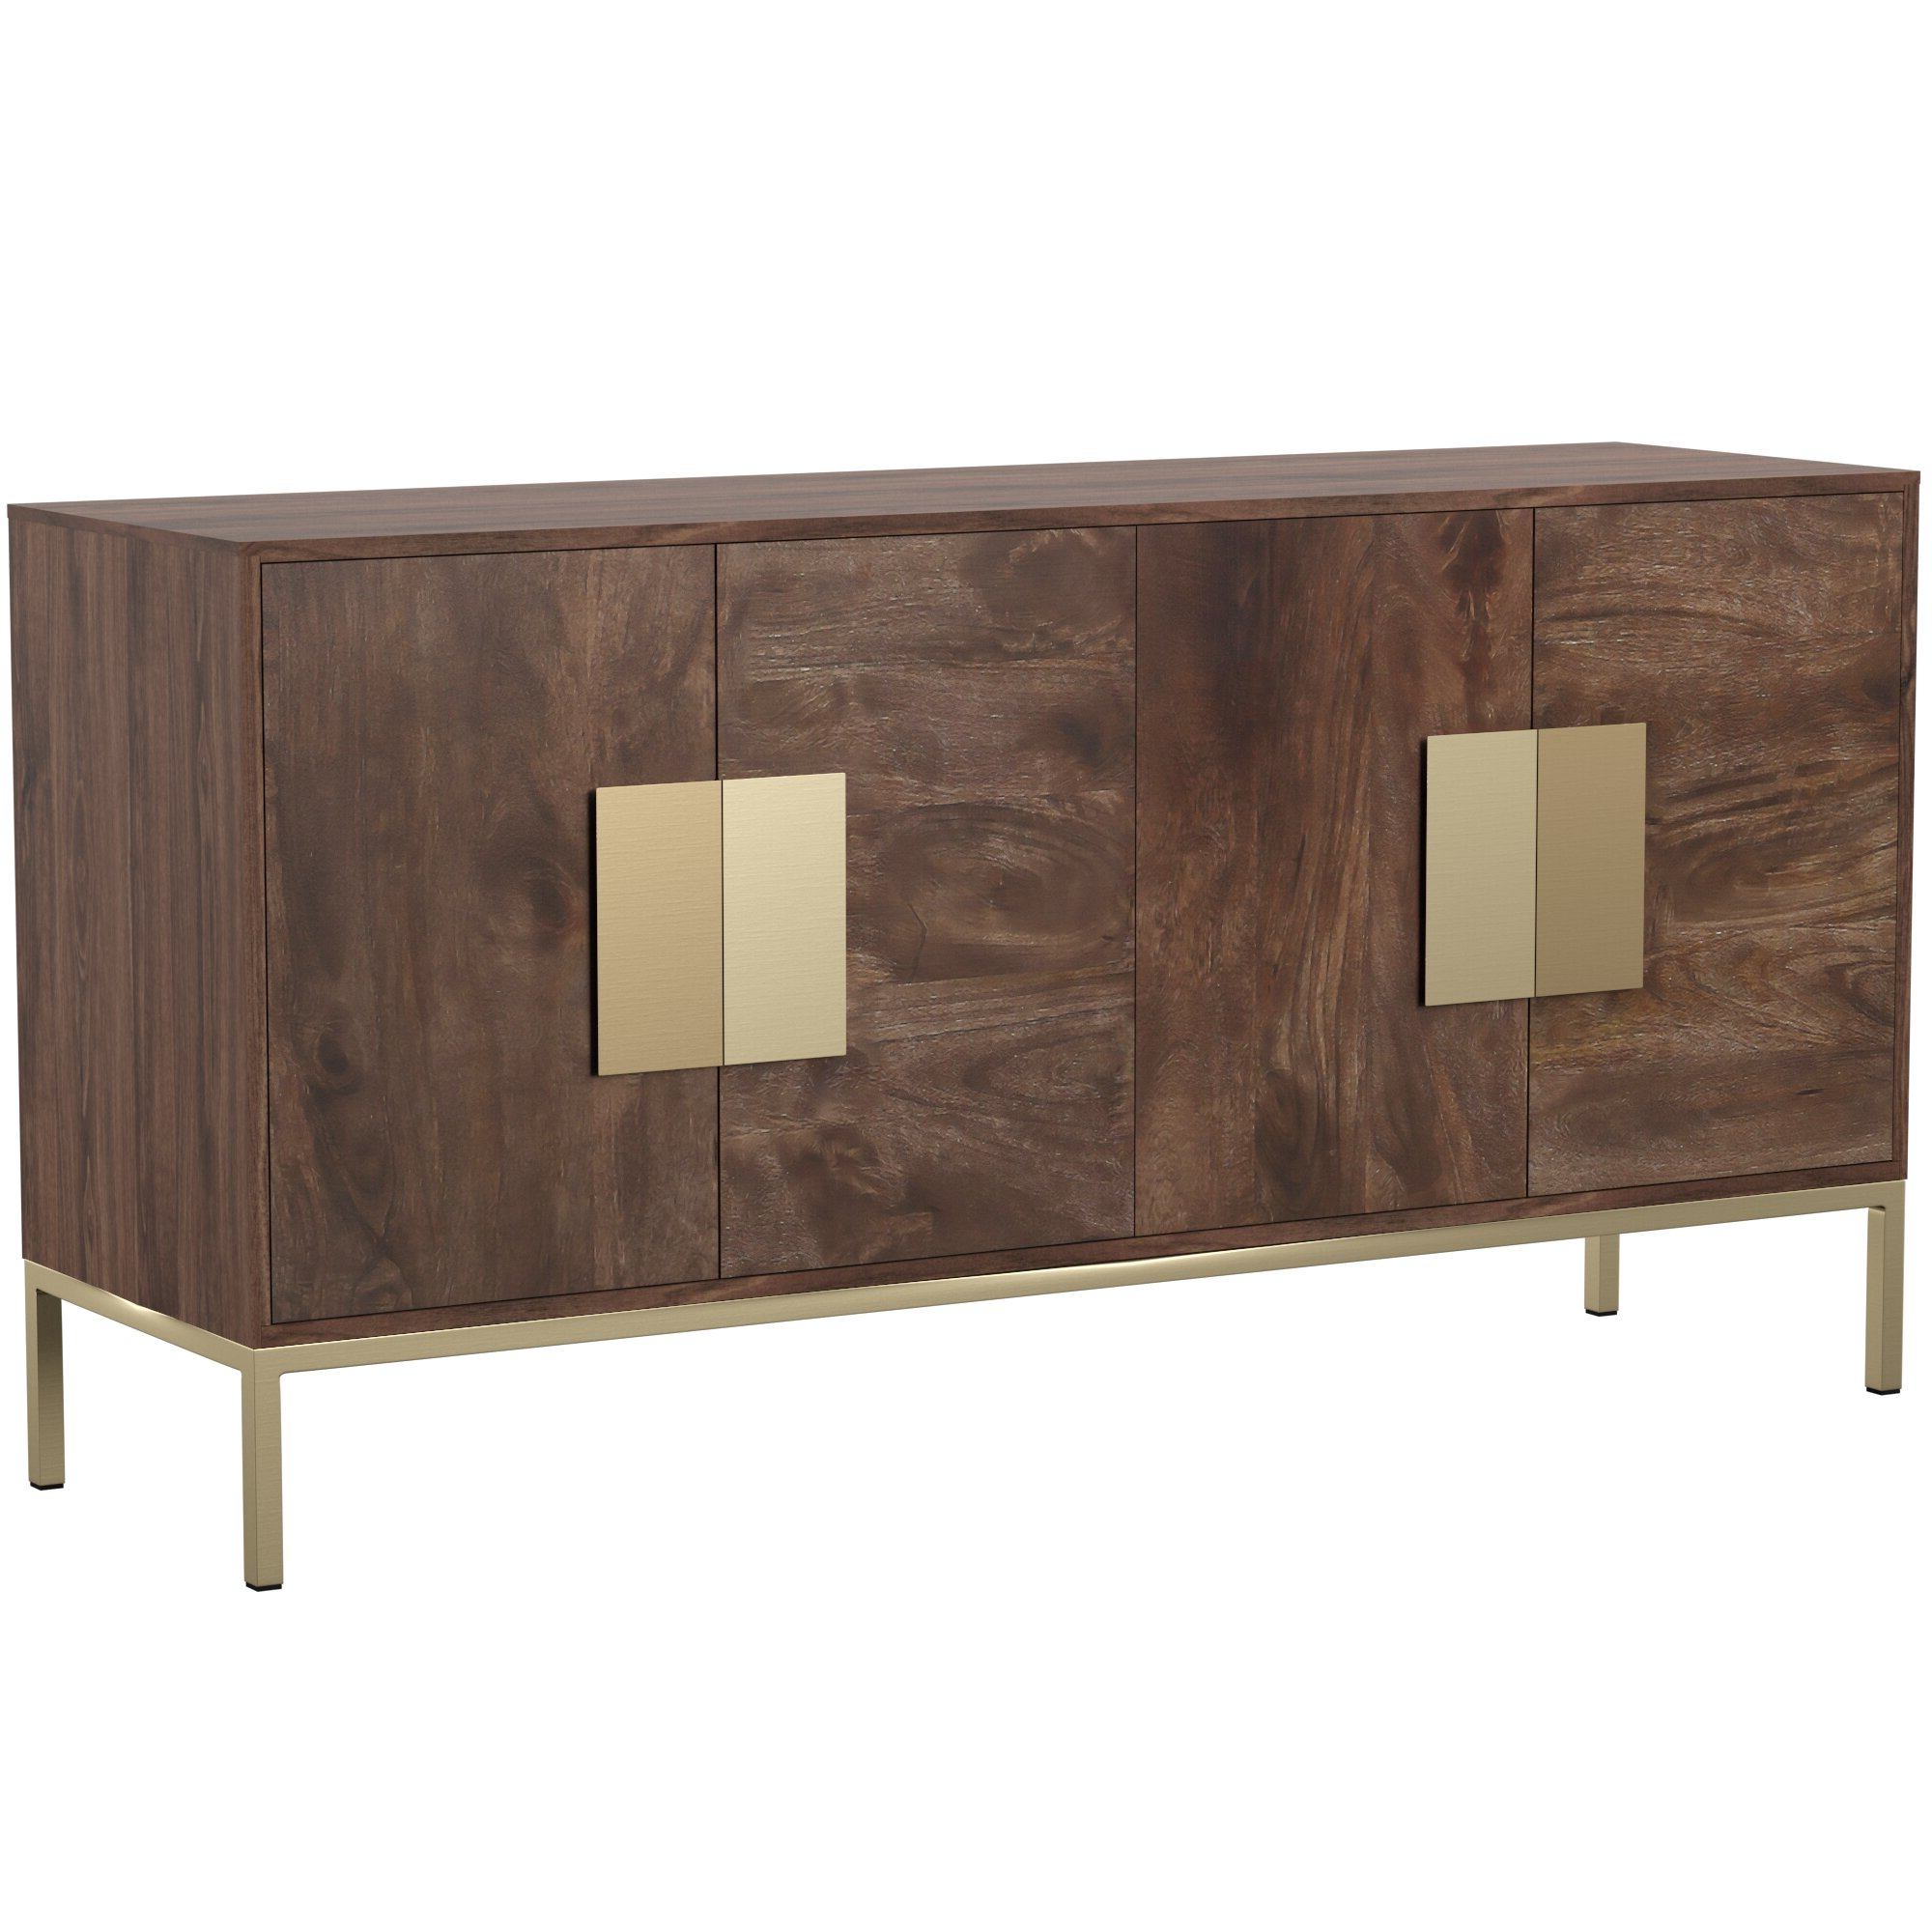 Kyte Sideboard With Most Current Cher Sideboards (View 13 of 20)